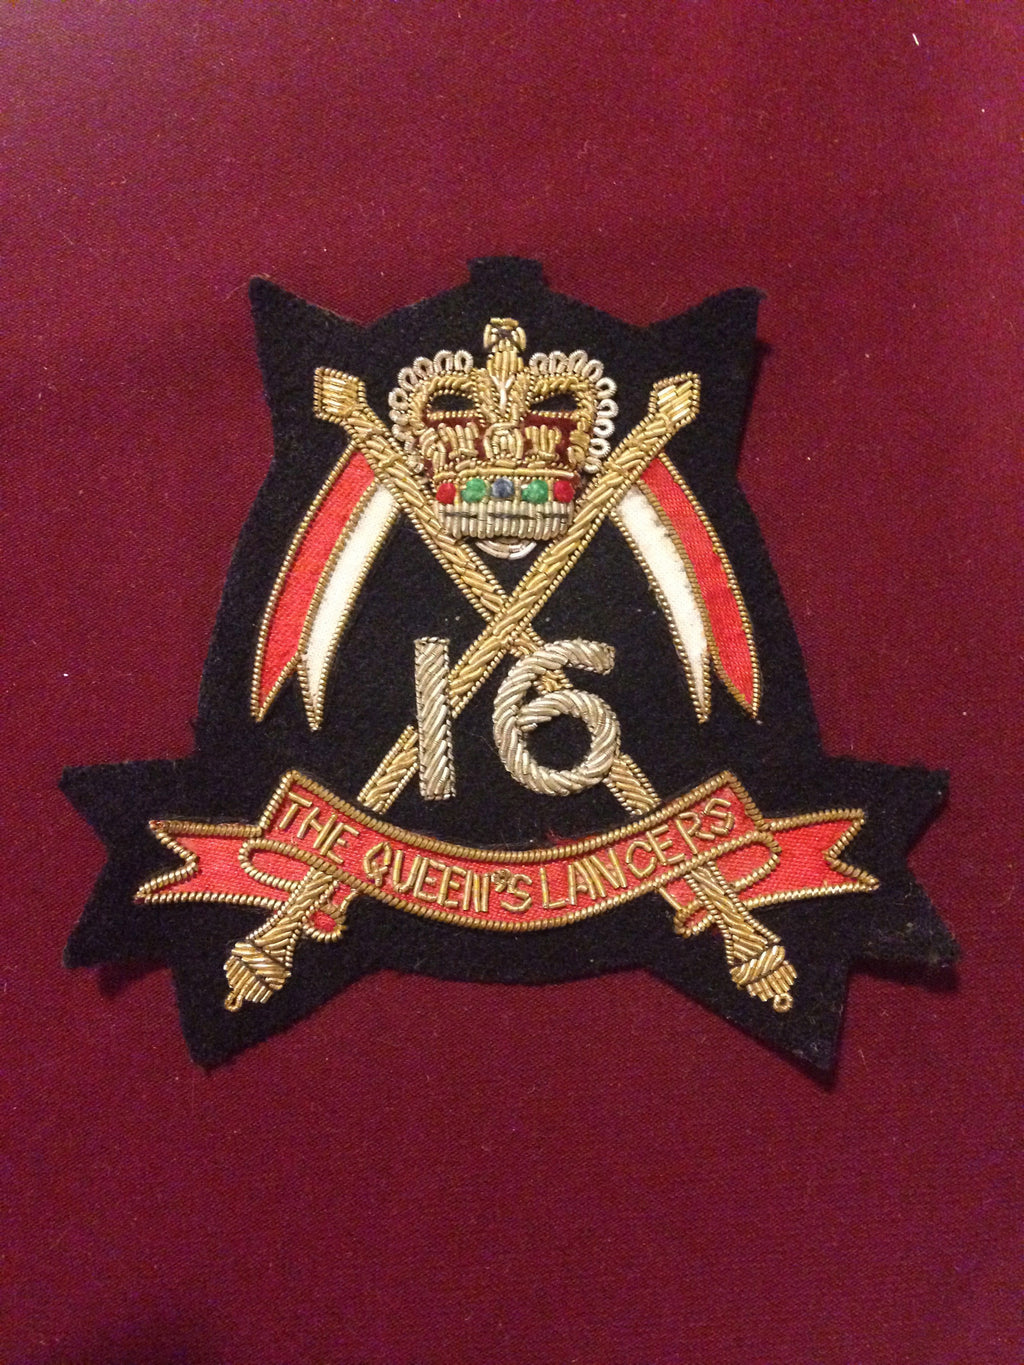 16th Queens Lancers Blazer Badge